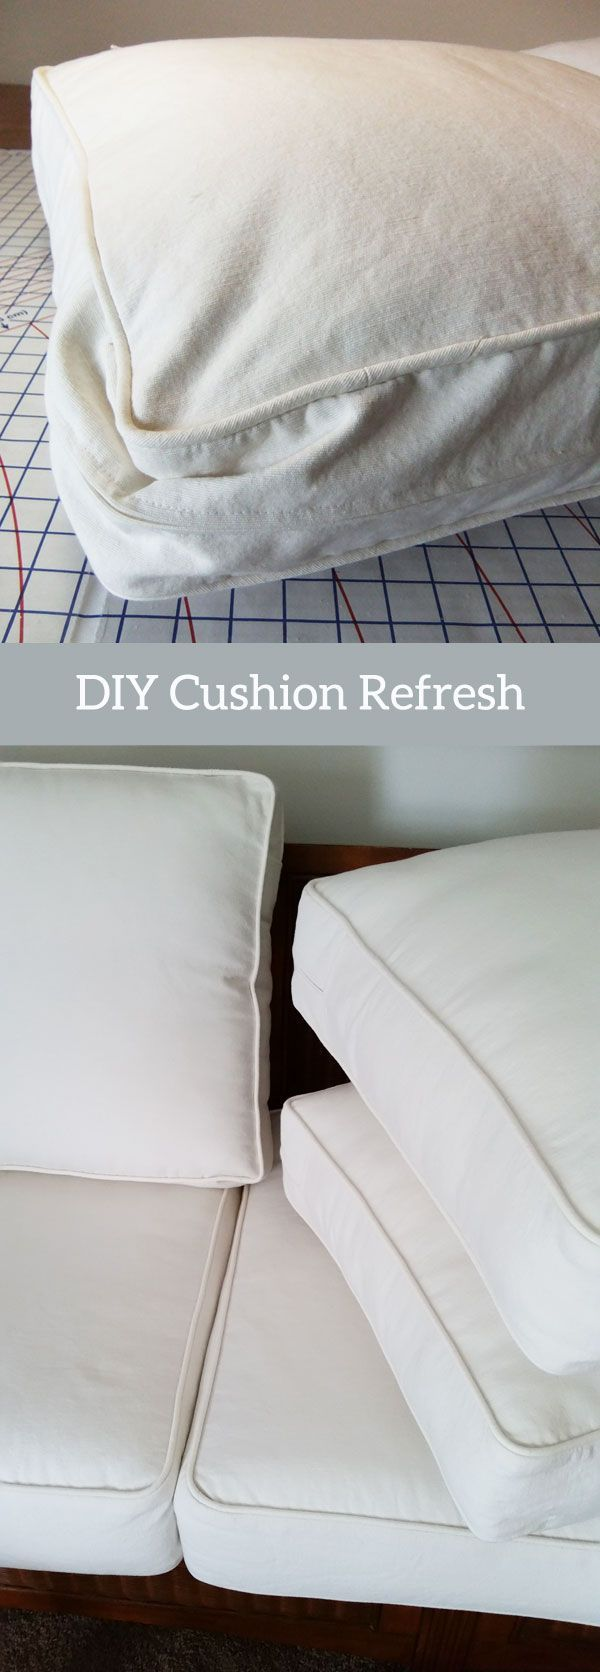 public slipcover turning me easyrhcomfortworkscom home into rhdecoratingdiyblogspotcom on meme sofa budget for your source making house let slipcovers creating a beauty